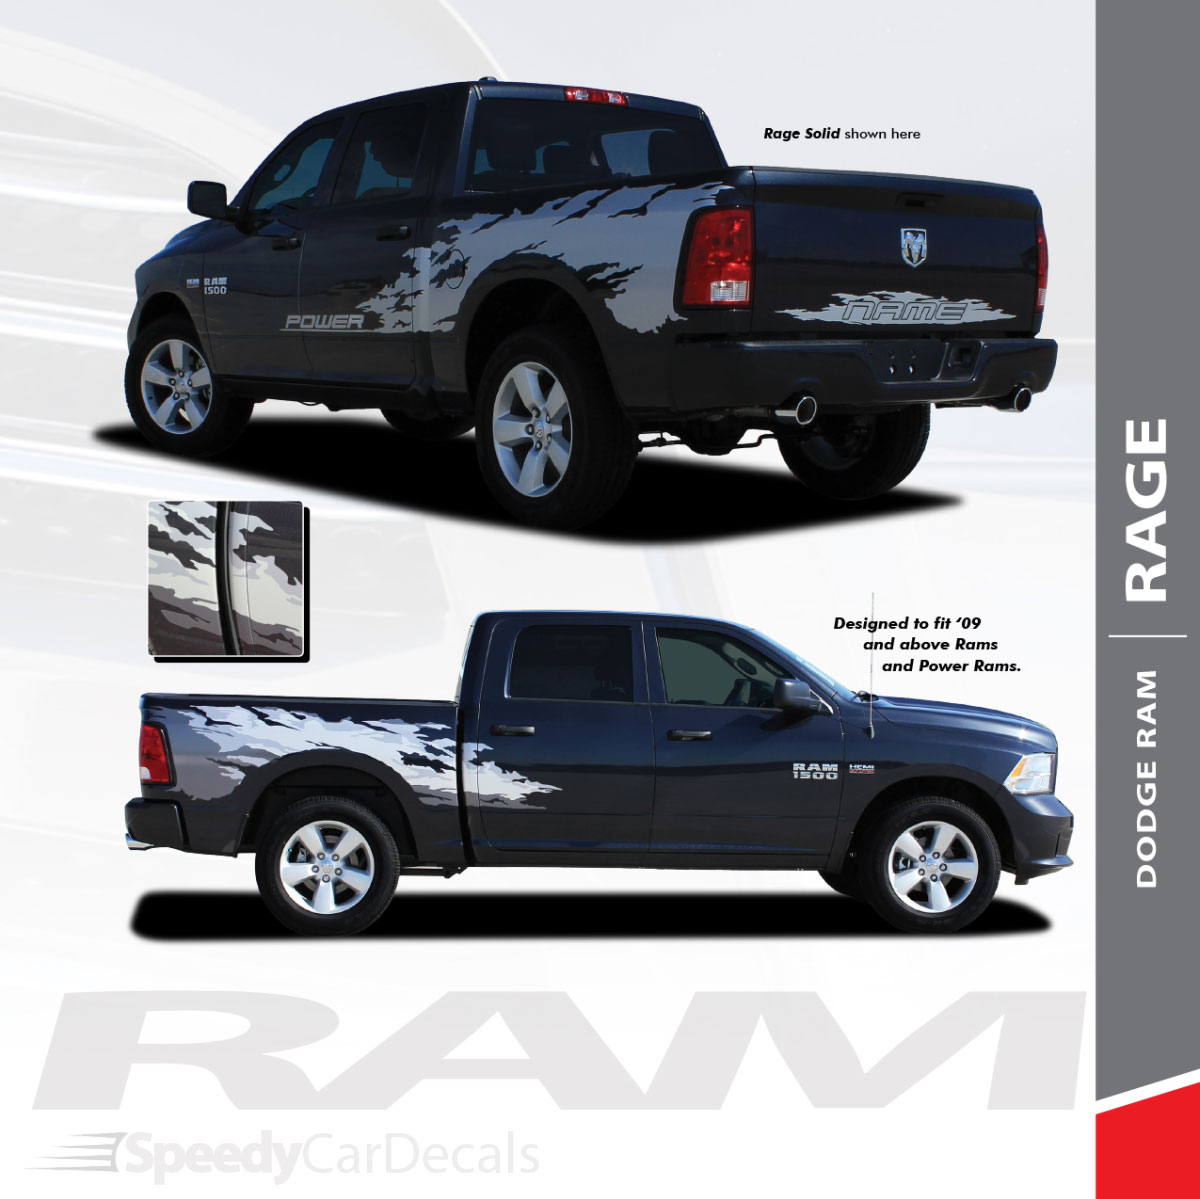 Ram Rage Solid 2009 2018 Dodge Ram Power Wagon Style Vinyl Graphics Truck Bed Decal Striping Kit Speedycardecals Fast Car Decals Auto Decals Auto Stripes Vehicle Specific Graphics